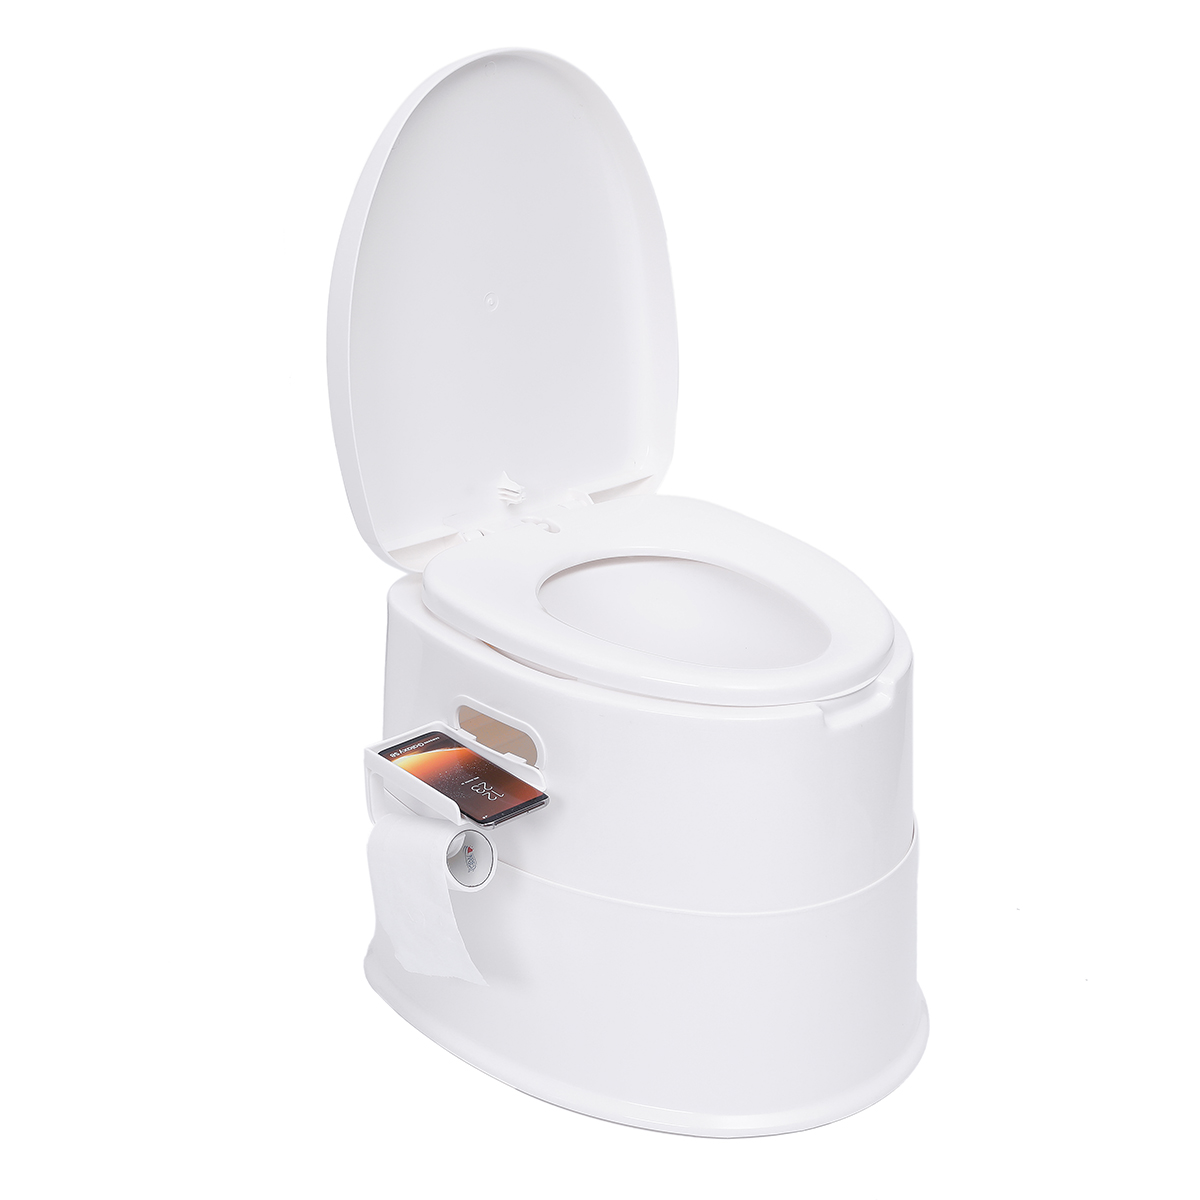 Portable Toilet Bowl Extra Strong Durable Support Adult Senior 2